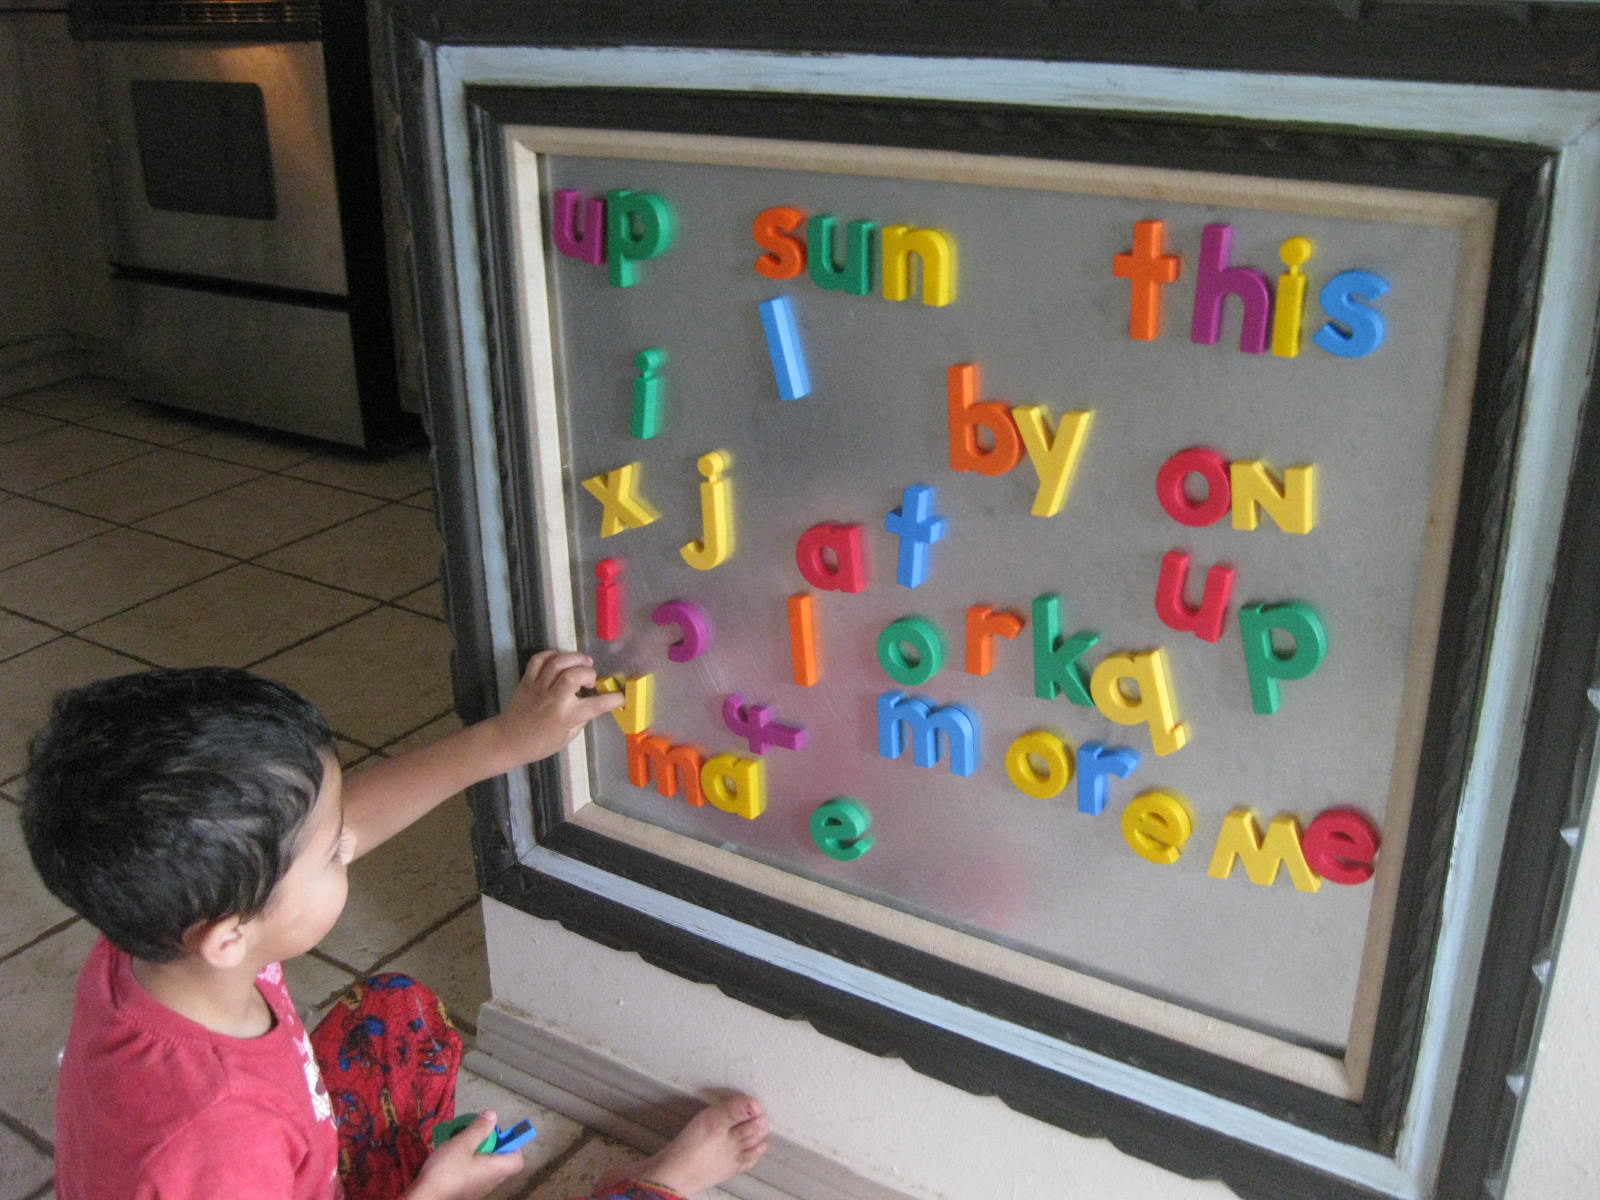 this is ideal for us as it helps tutor the kids on spelling and entertains the baby our fridge is stainless but not magnetic